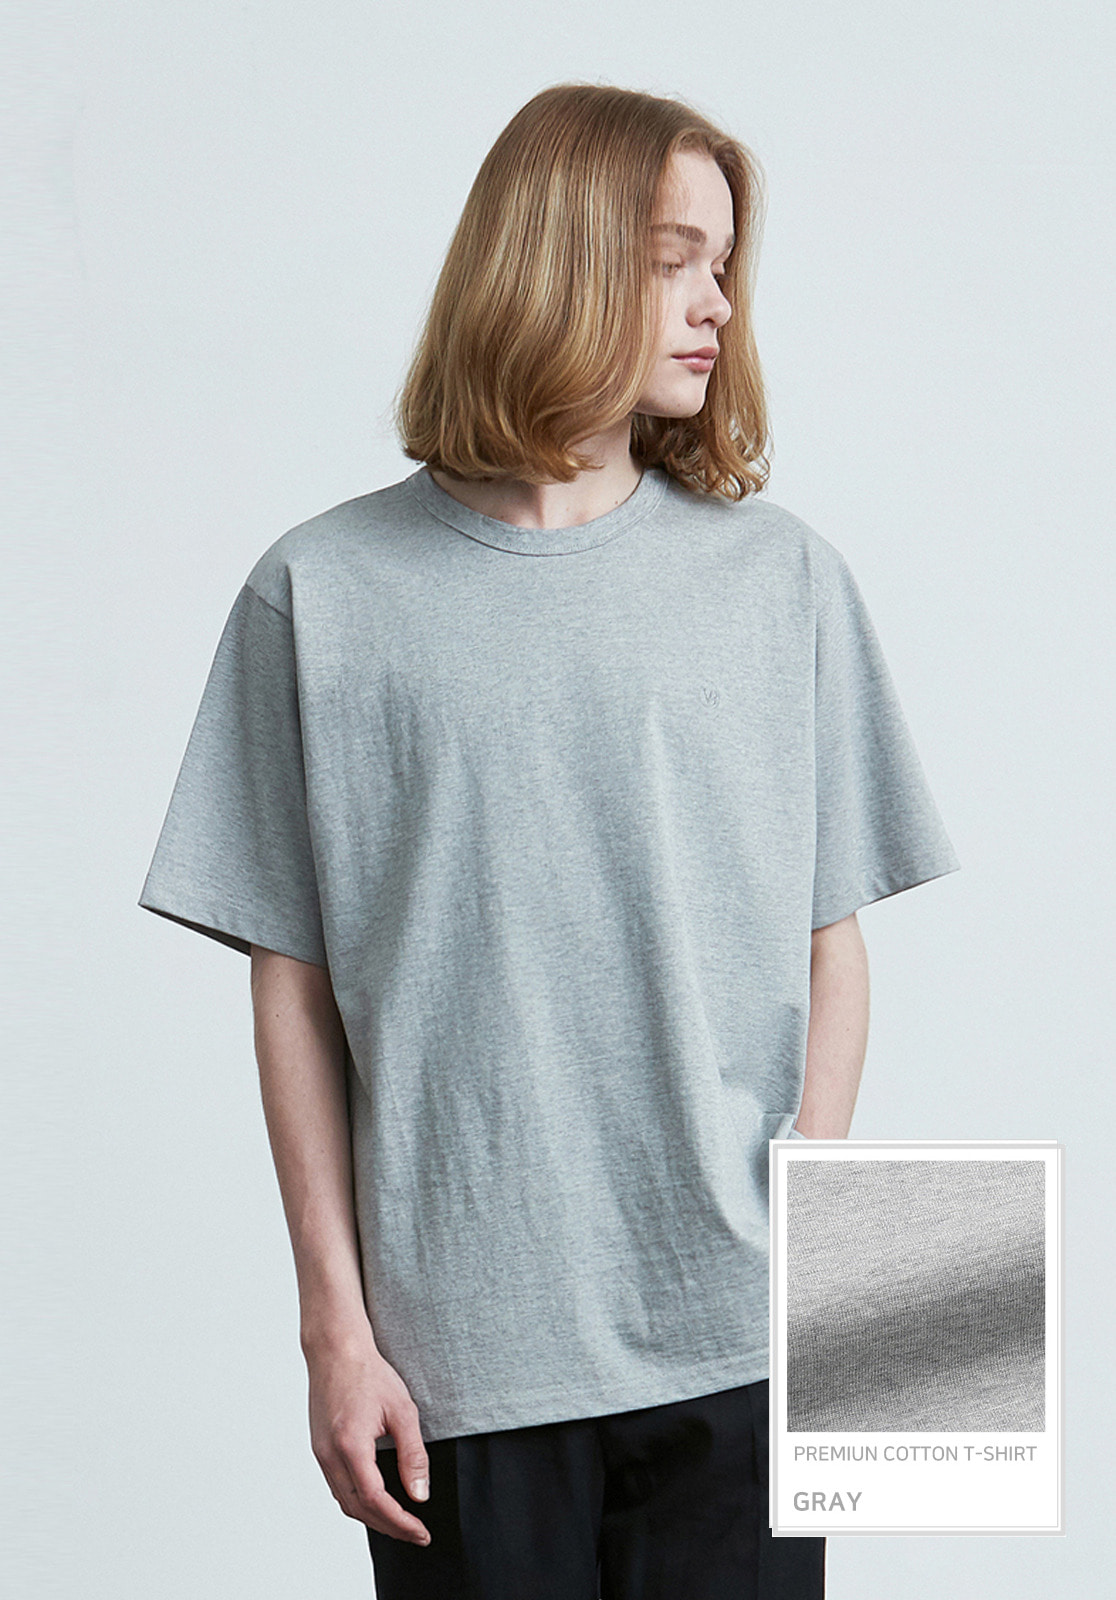 V017 PRIMIUM COTTON T-SHIRTS  GRAY